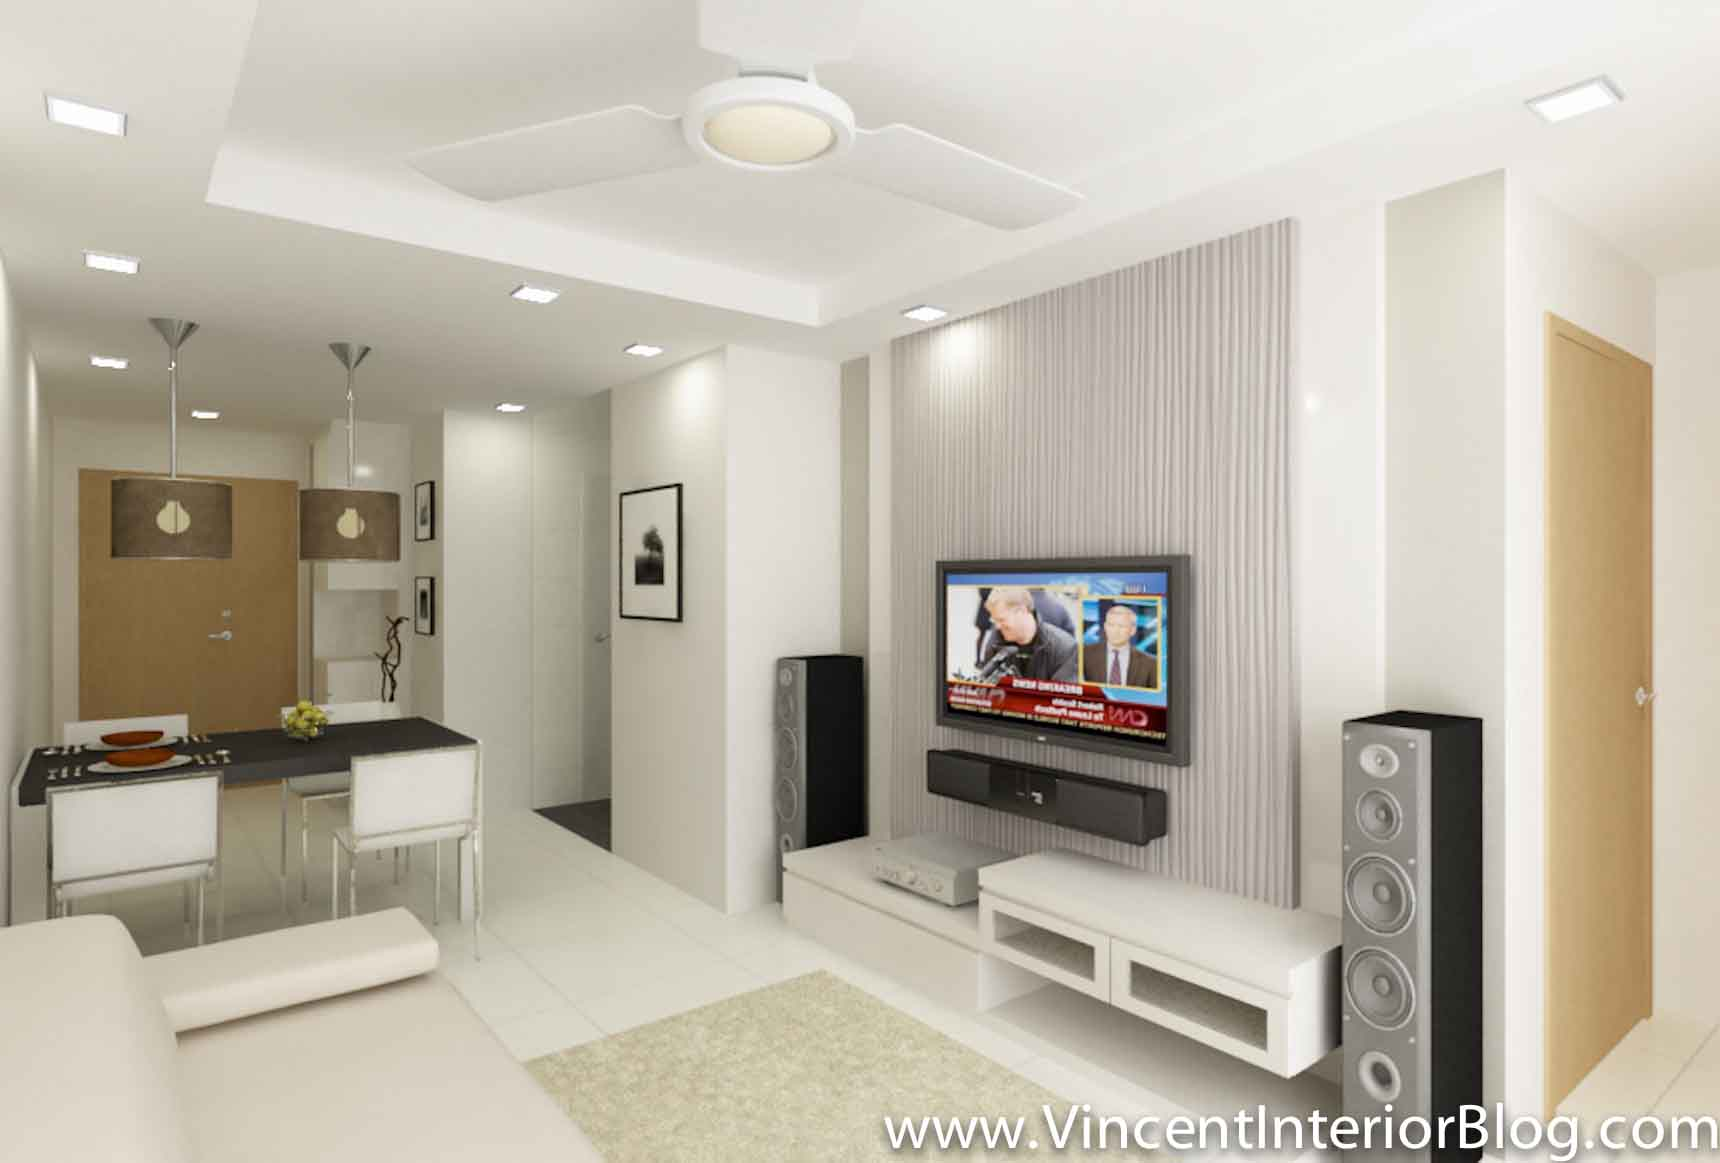 Bto 3 room hdb renovation by interior designer ben ng for Interior design singapore hdb 5 room flat